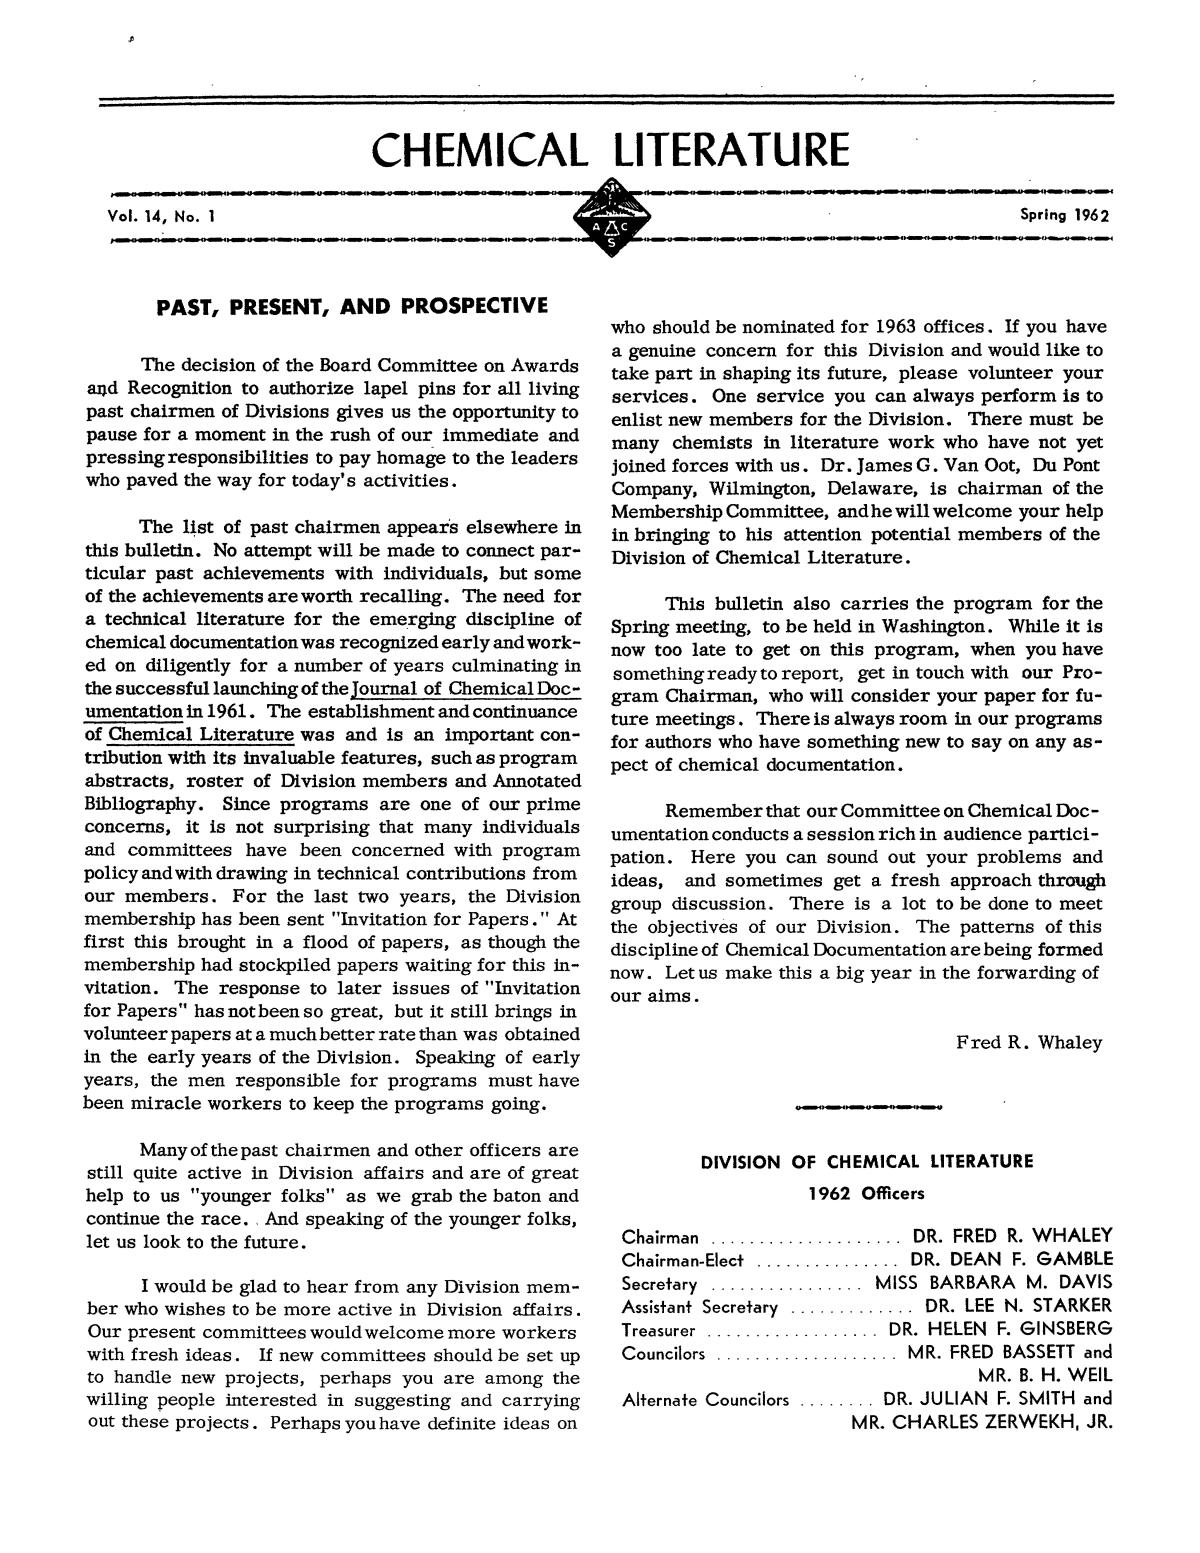 Chemical Literature, Volume 14, Number 1, Spring 1962                                                                                                      1